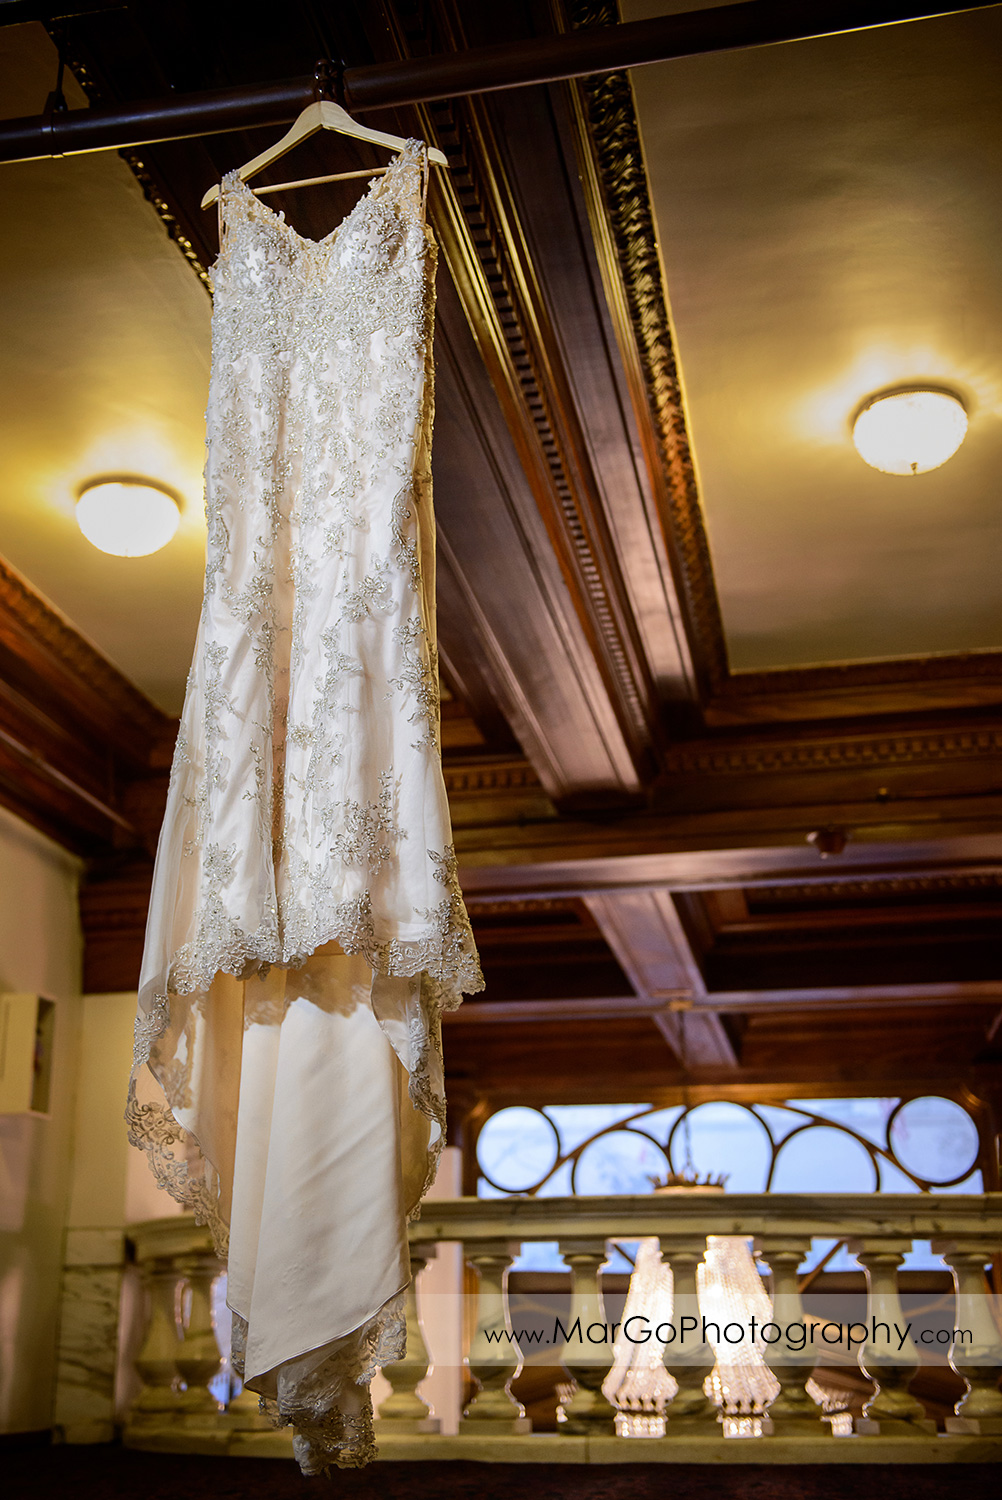 wedding dress hanging at Whitcomb Hotel in San Francisco